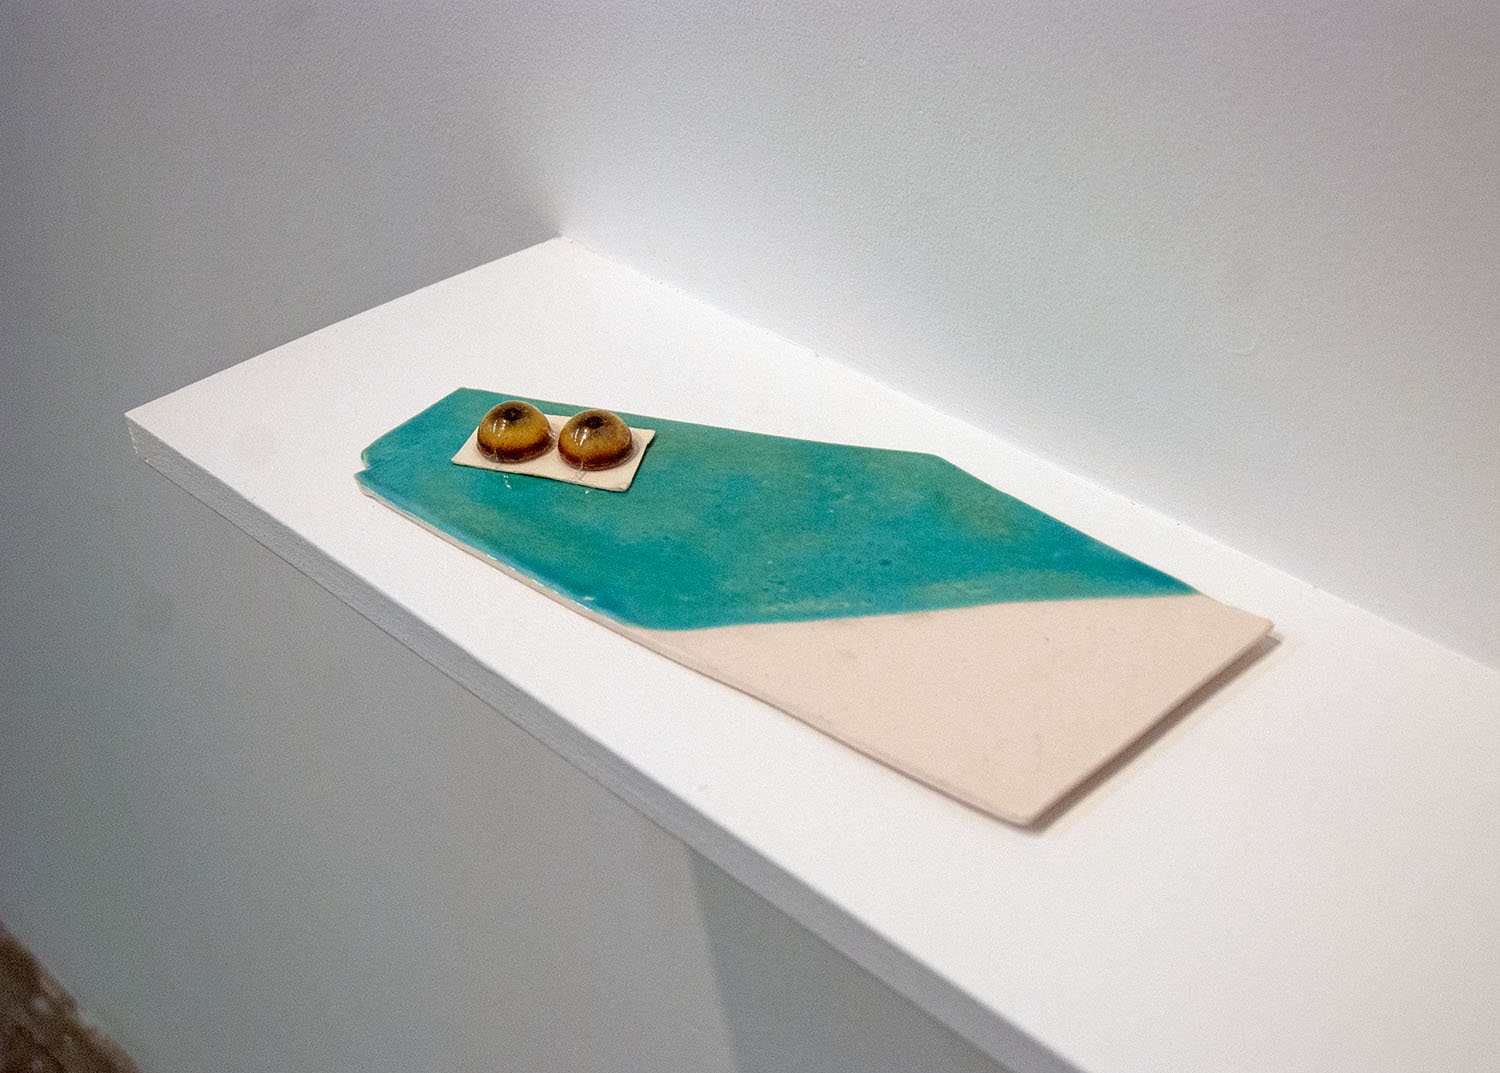 A place where you buy things for sculpture that has glass eyes,  2014, glazed porcelain and glass eyes, .75 x 11 x 5.25 inches